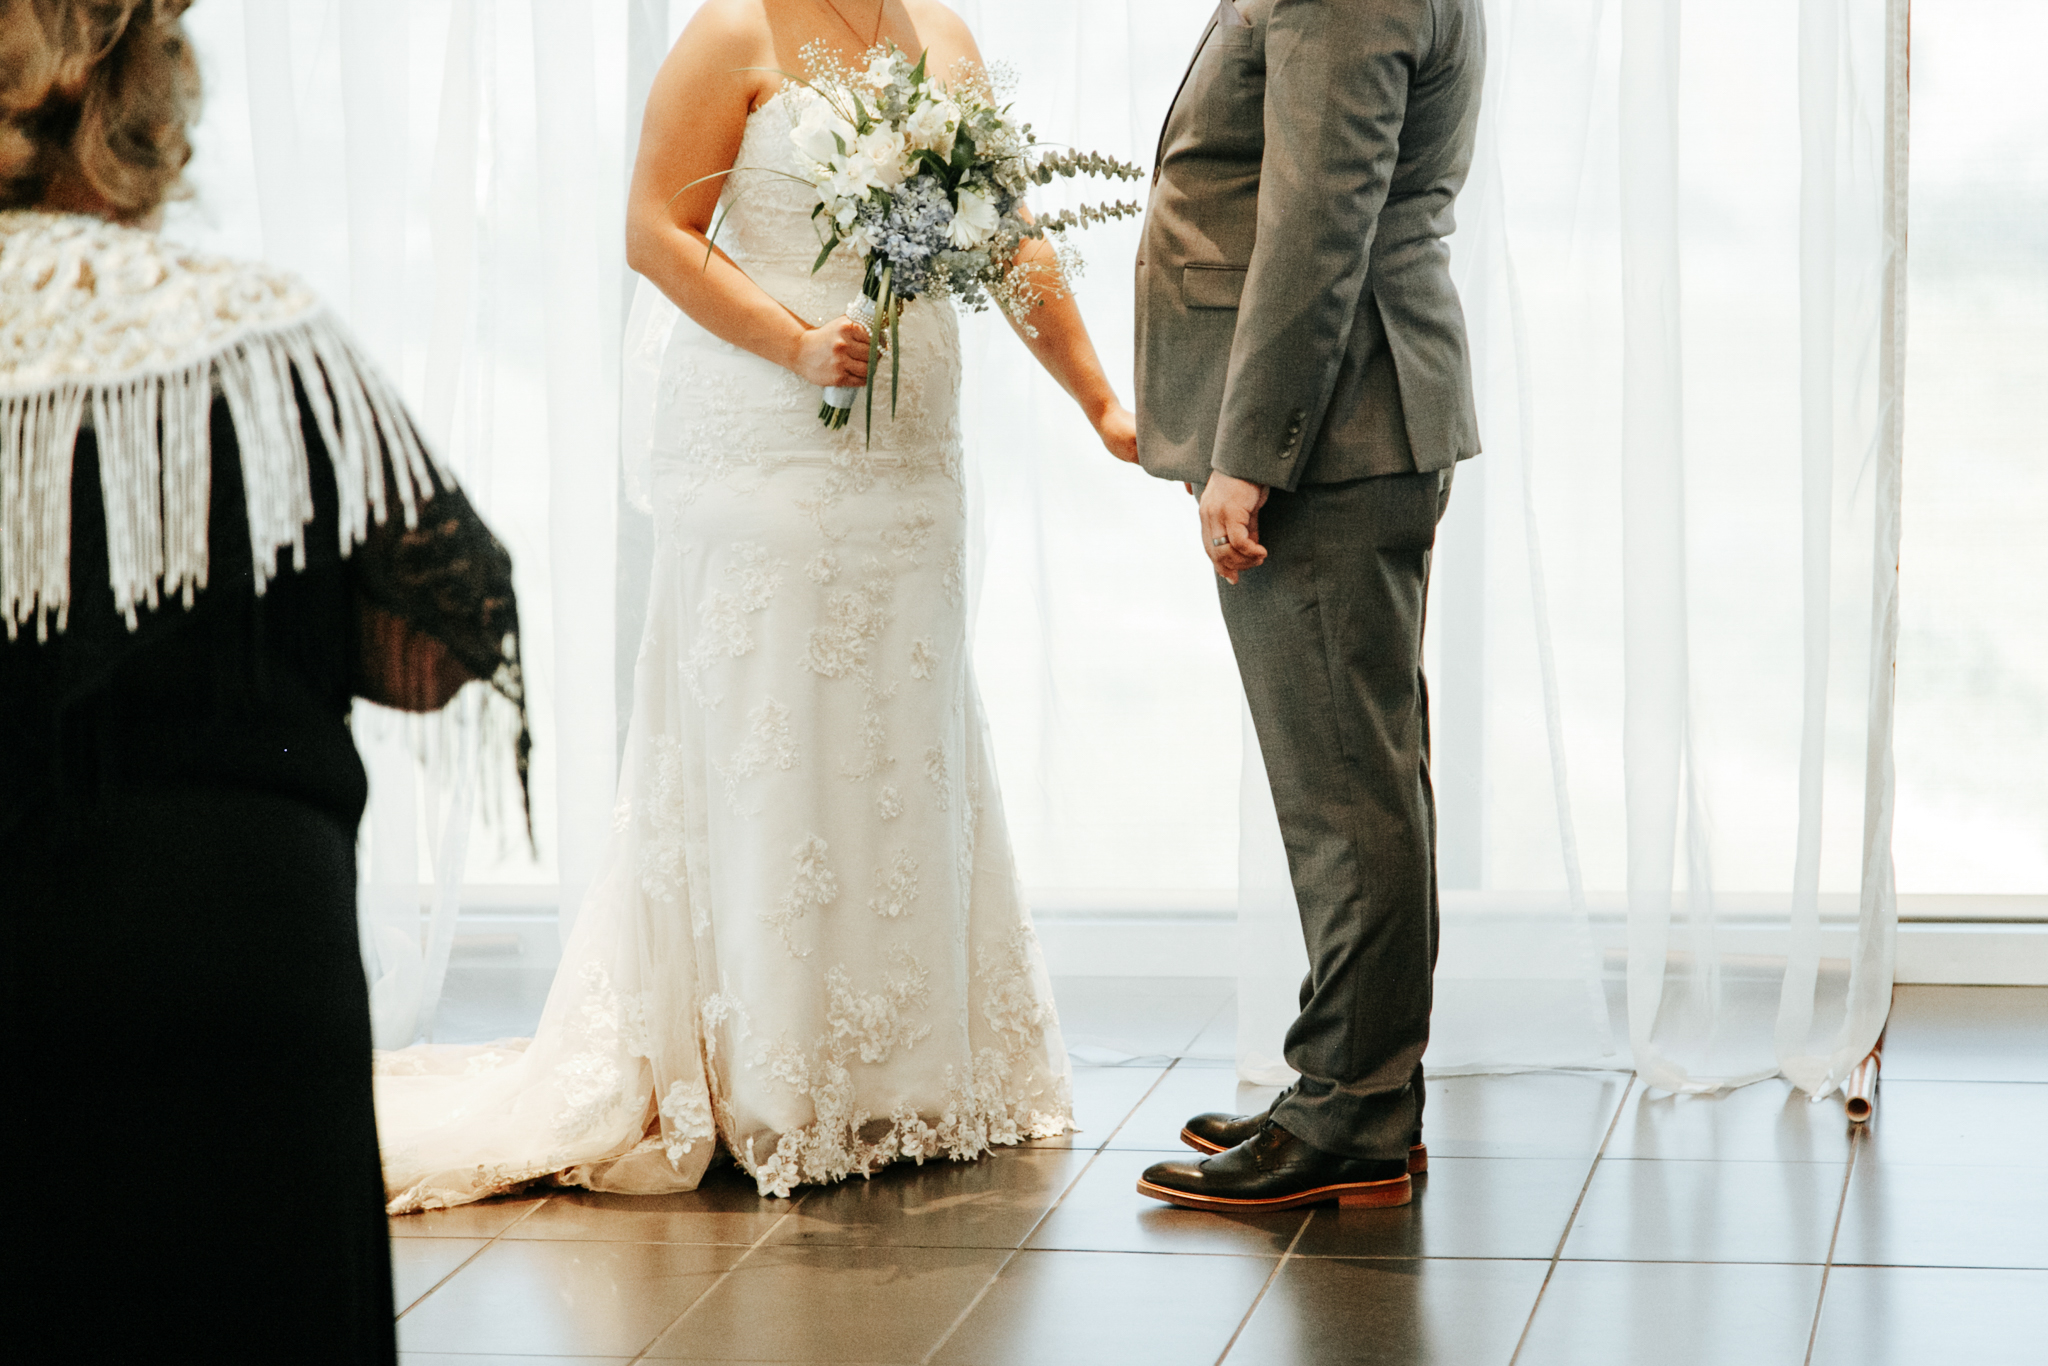 lethbridge-wedding-photographer-love-and-be-loved-photography-trent-danielle-galt-reception-picture-image-photo-58.jpg